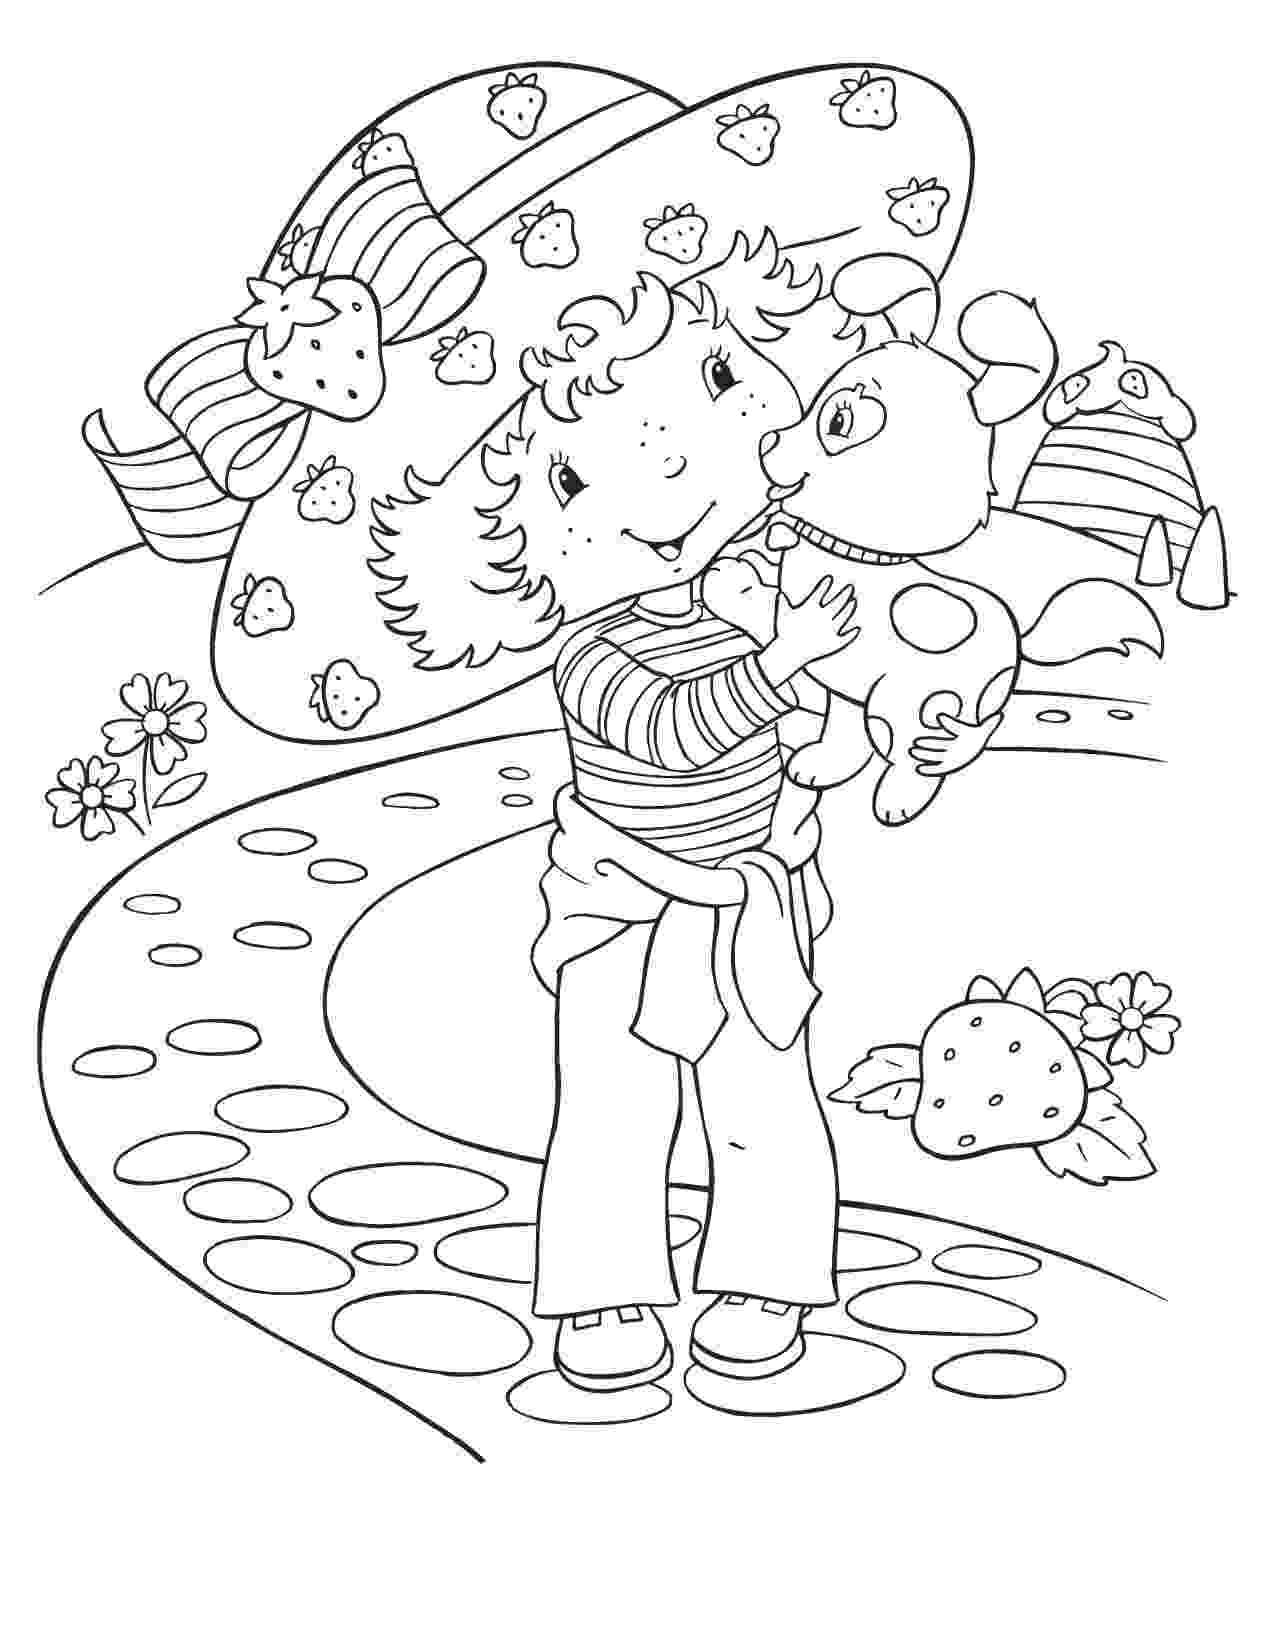 strawberry shortcake coloring pages free baby strawberry shortcake strawberry shortcake coloring coloring free pages shortcake strawberry